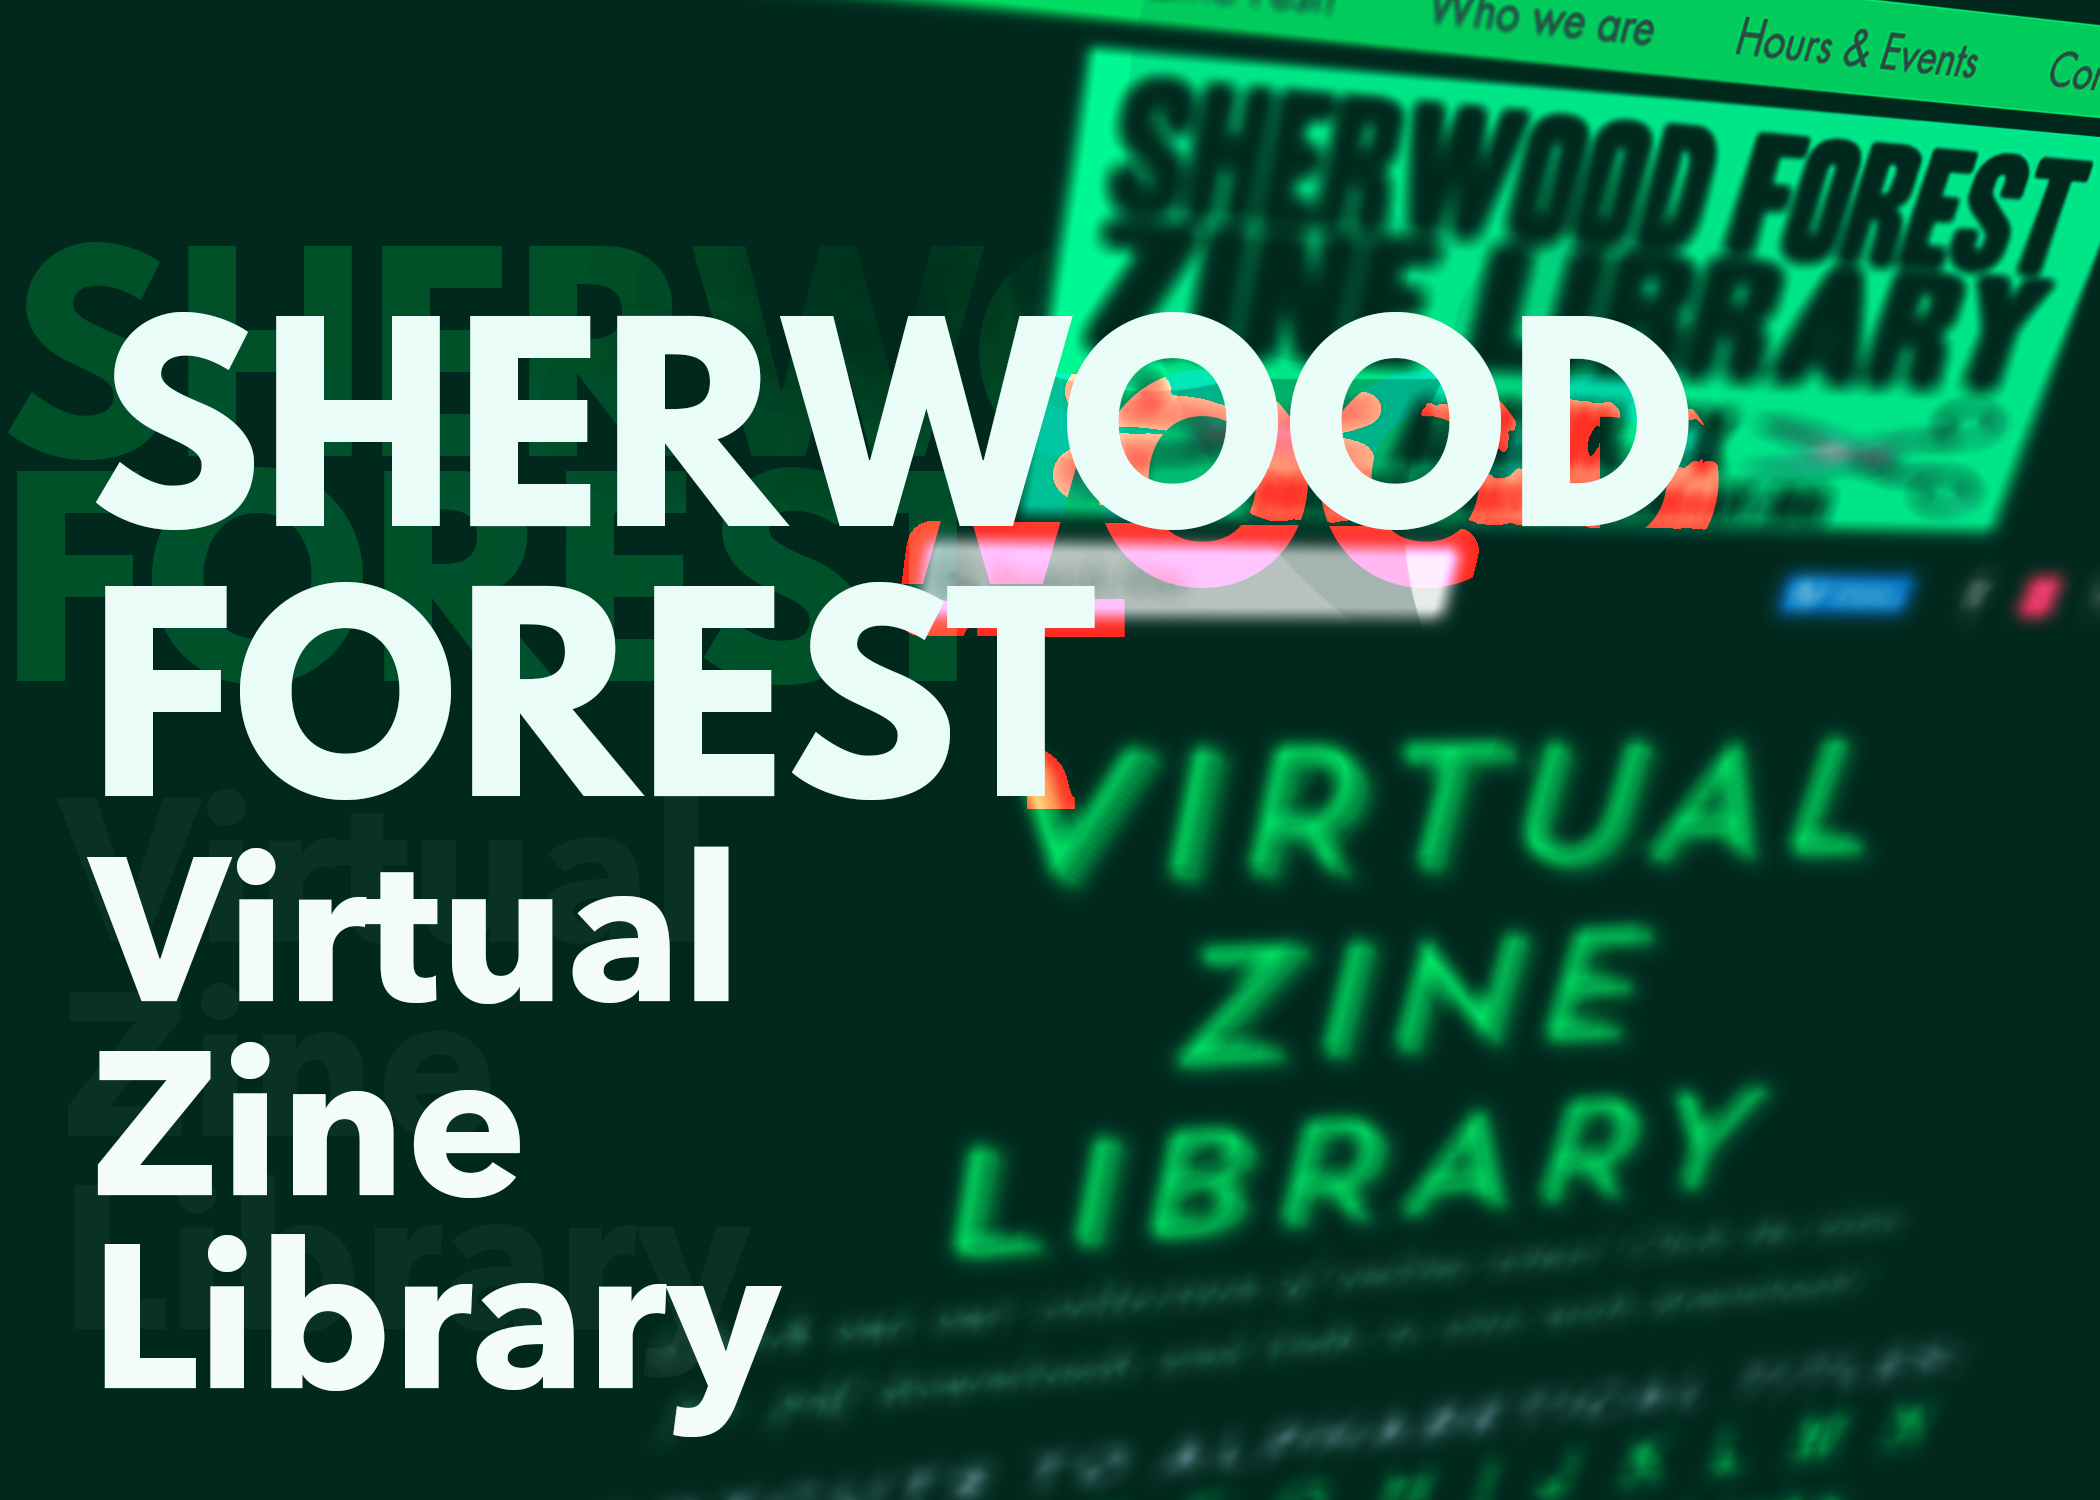 Sherwood Forset Virtual Zine Library